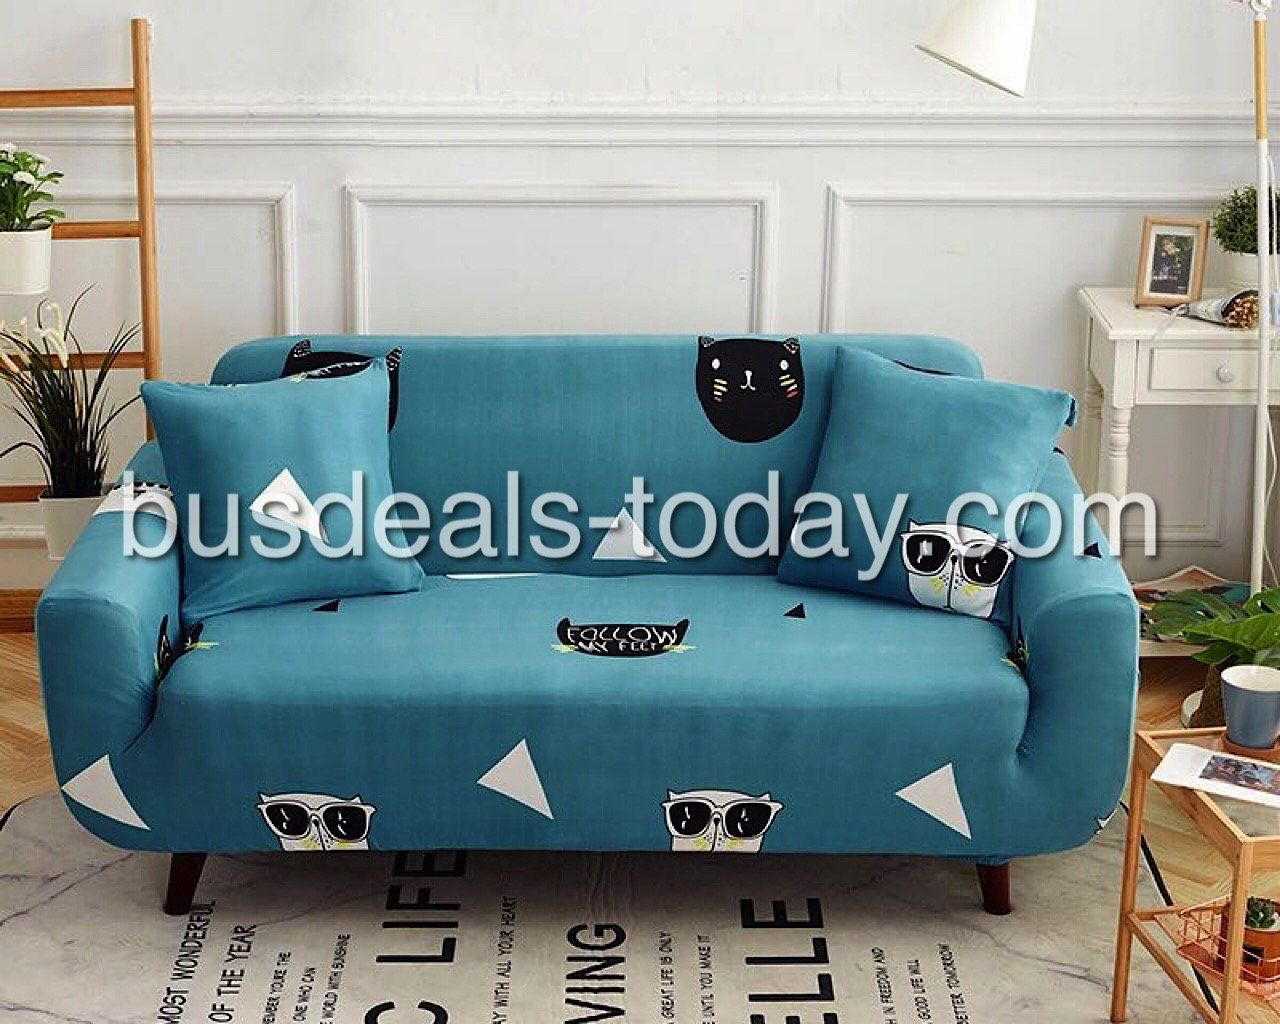 Latest Bed Linen Designs At Unbeatable Prices In Our Online Shop Busdeals Today Com Join Our Group At Fa Single Seater Sofa Bed Linen Design Three Seater Sofa